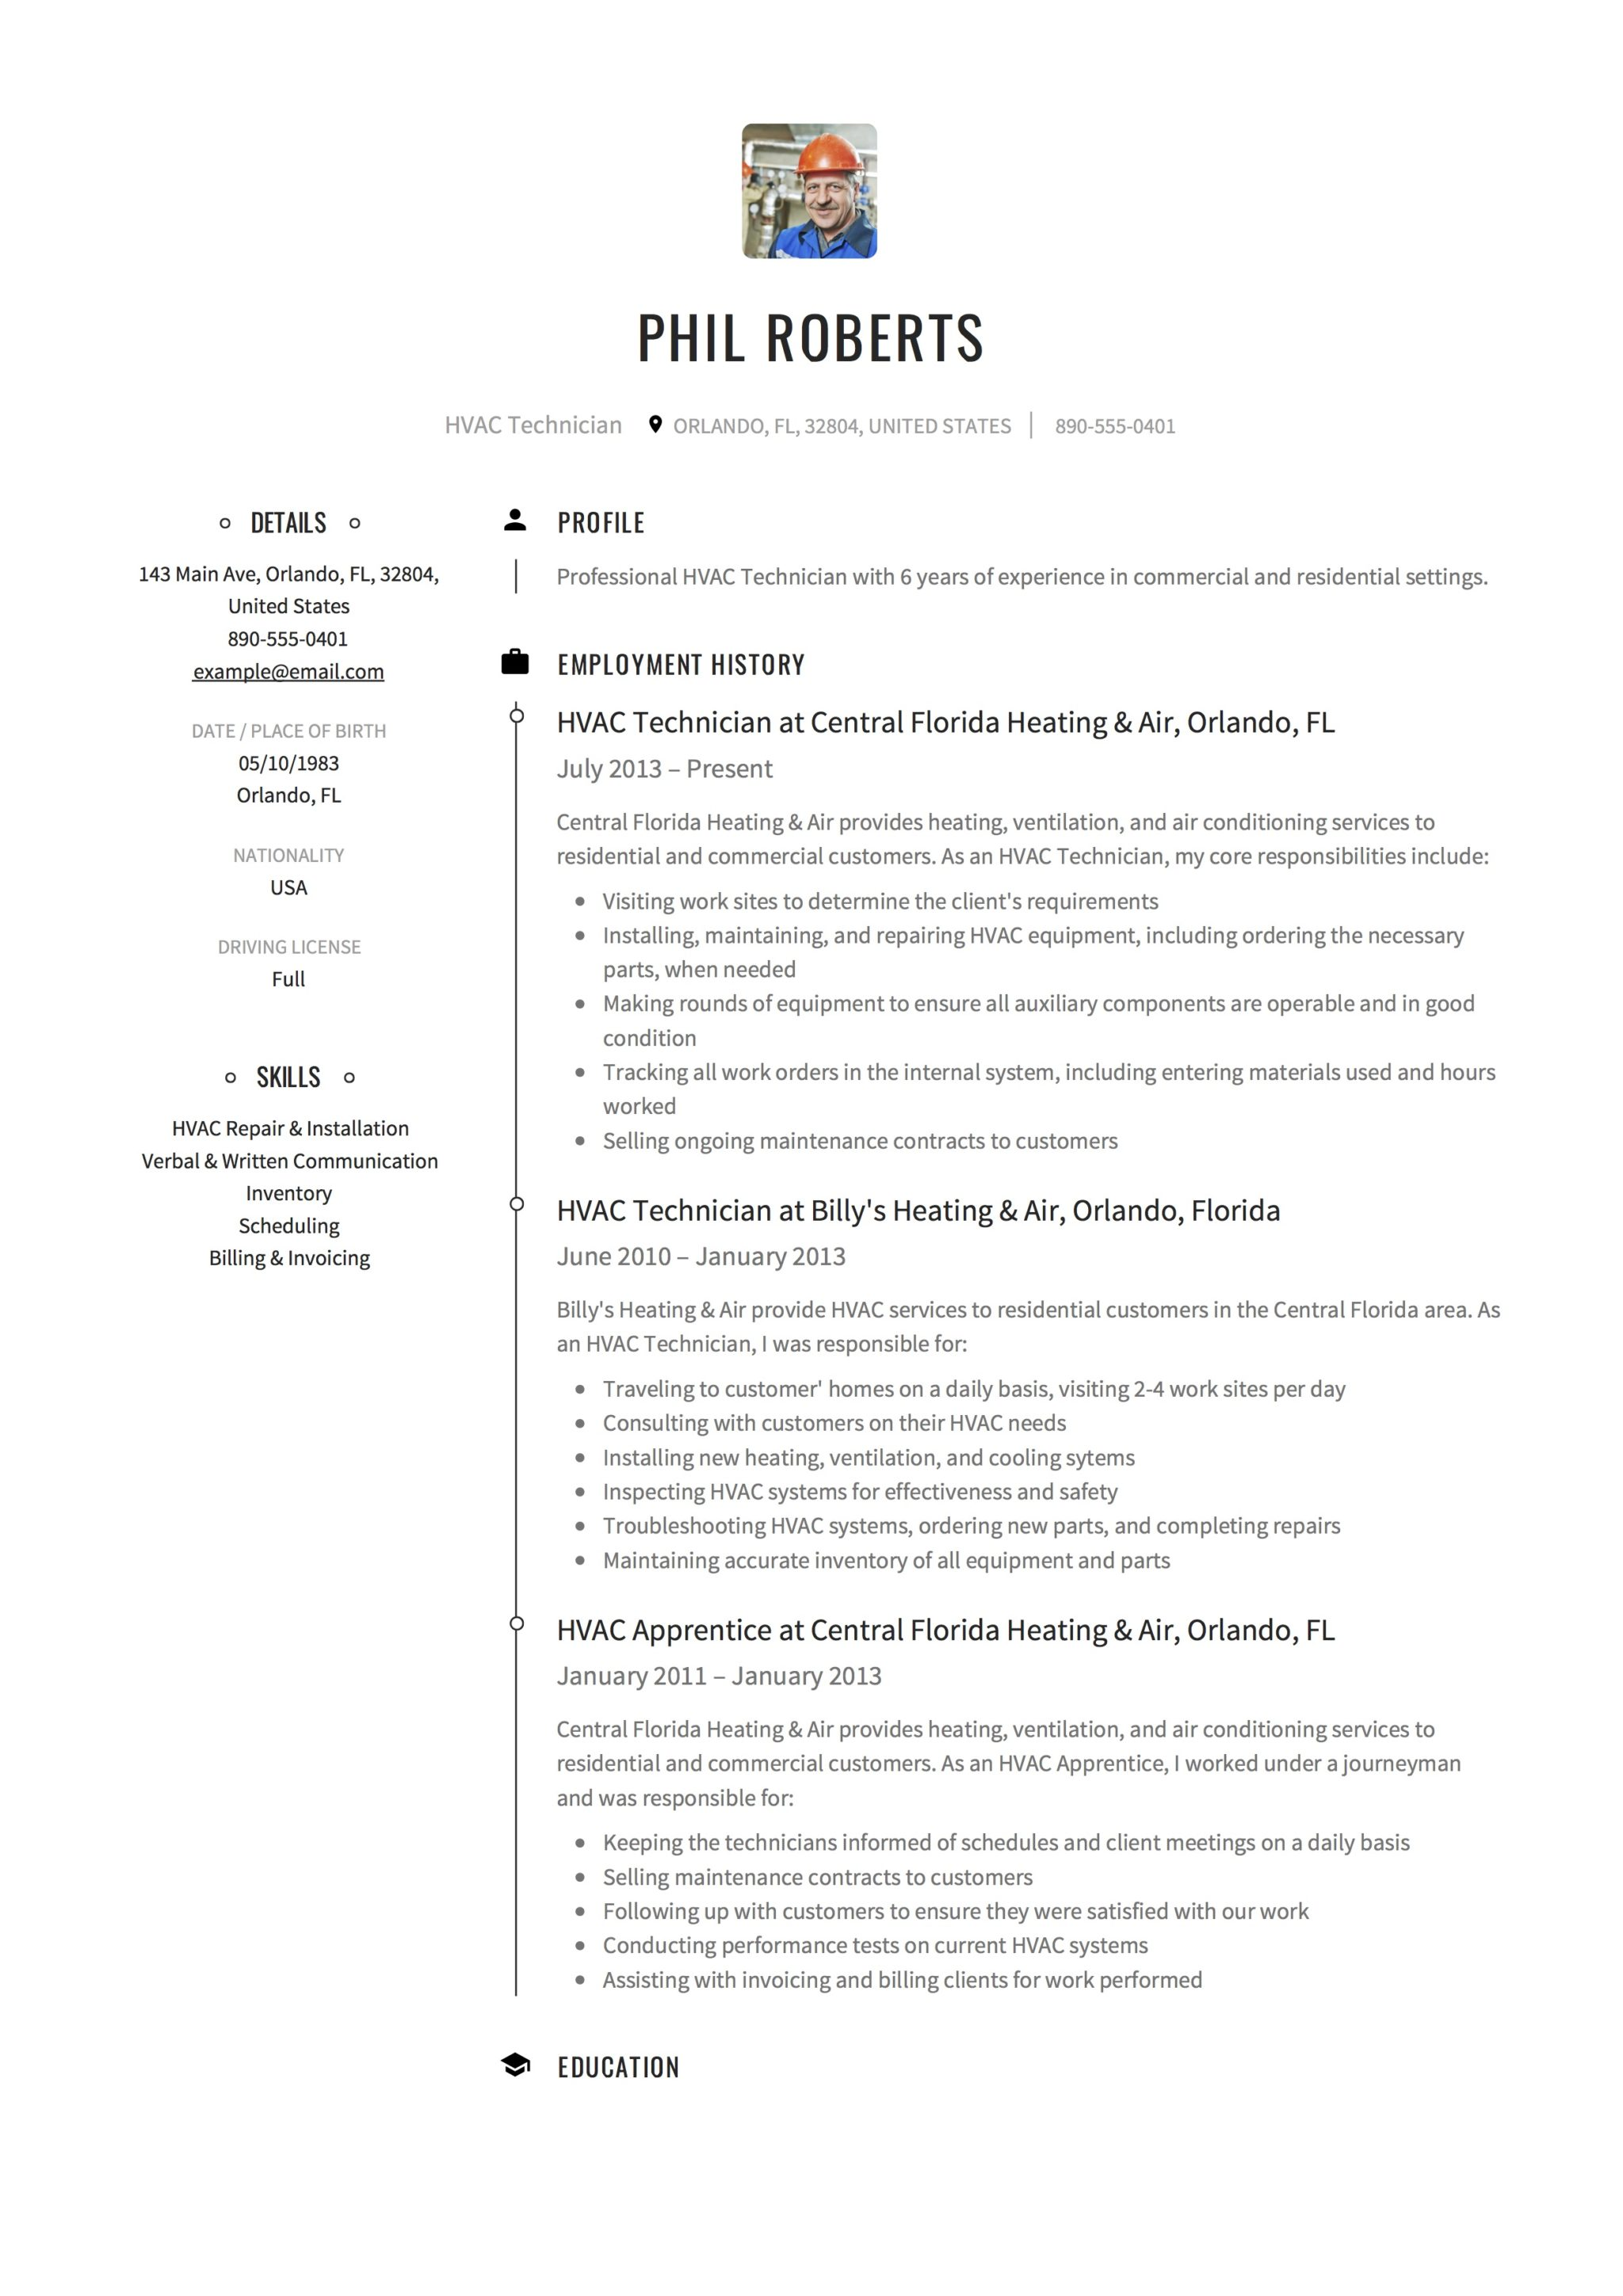 Creative HVAC Technician Resume